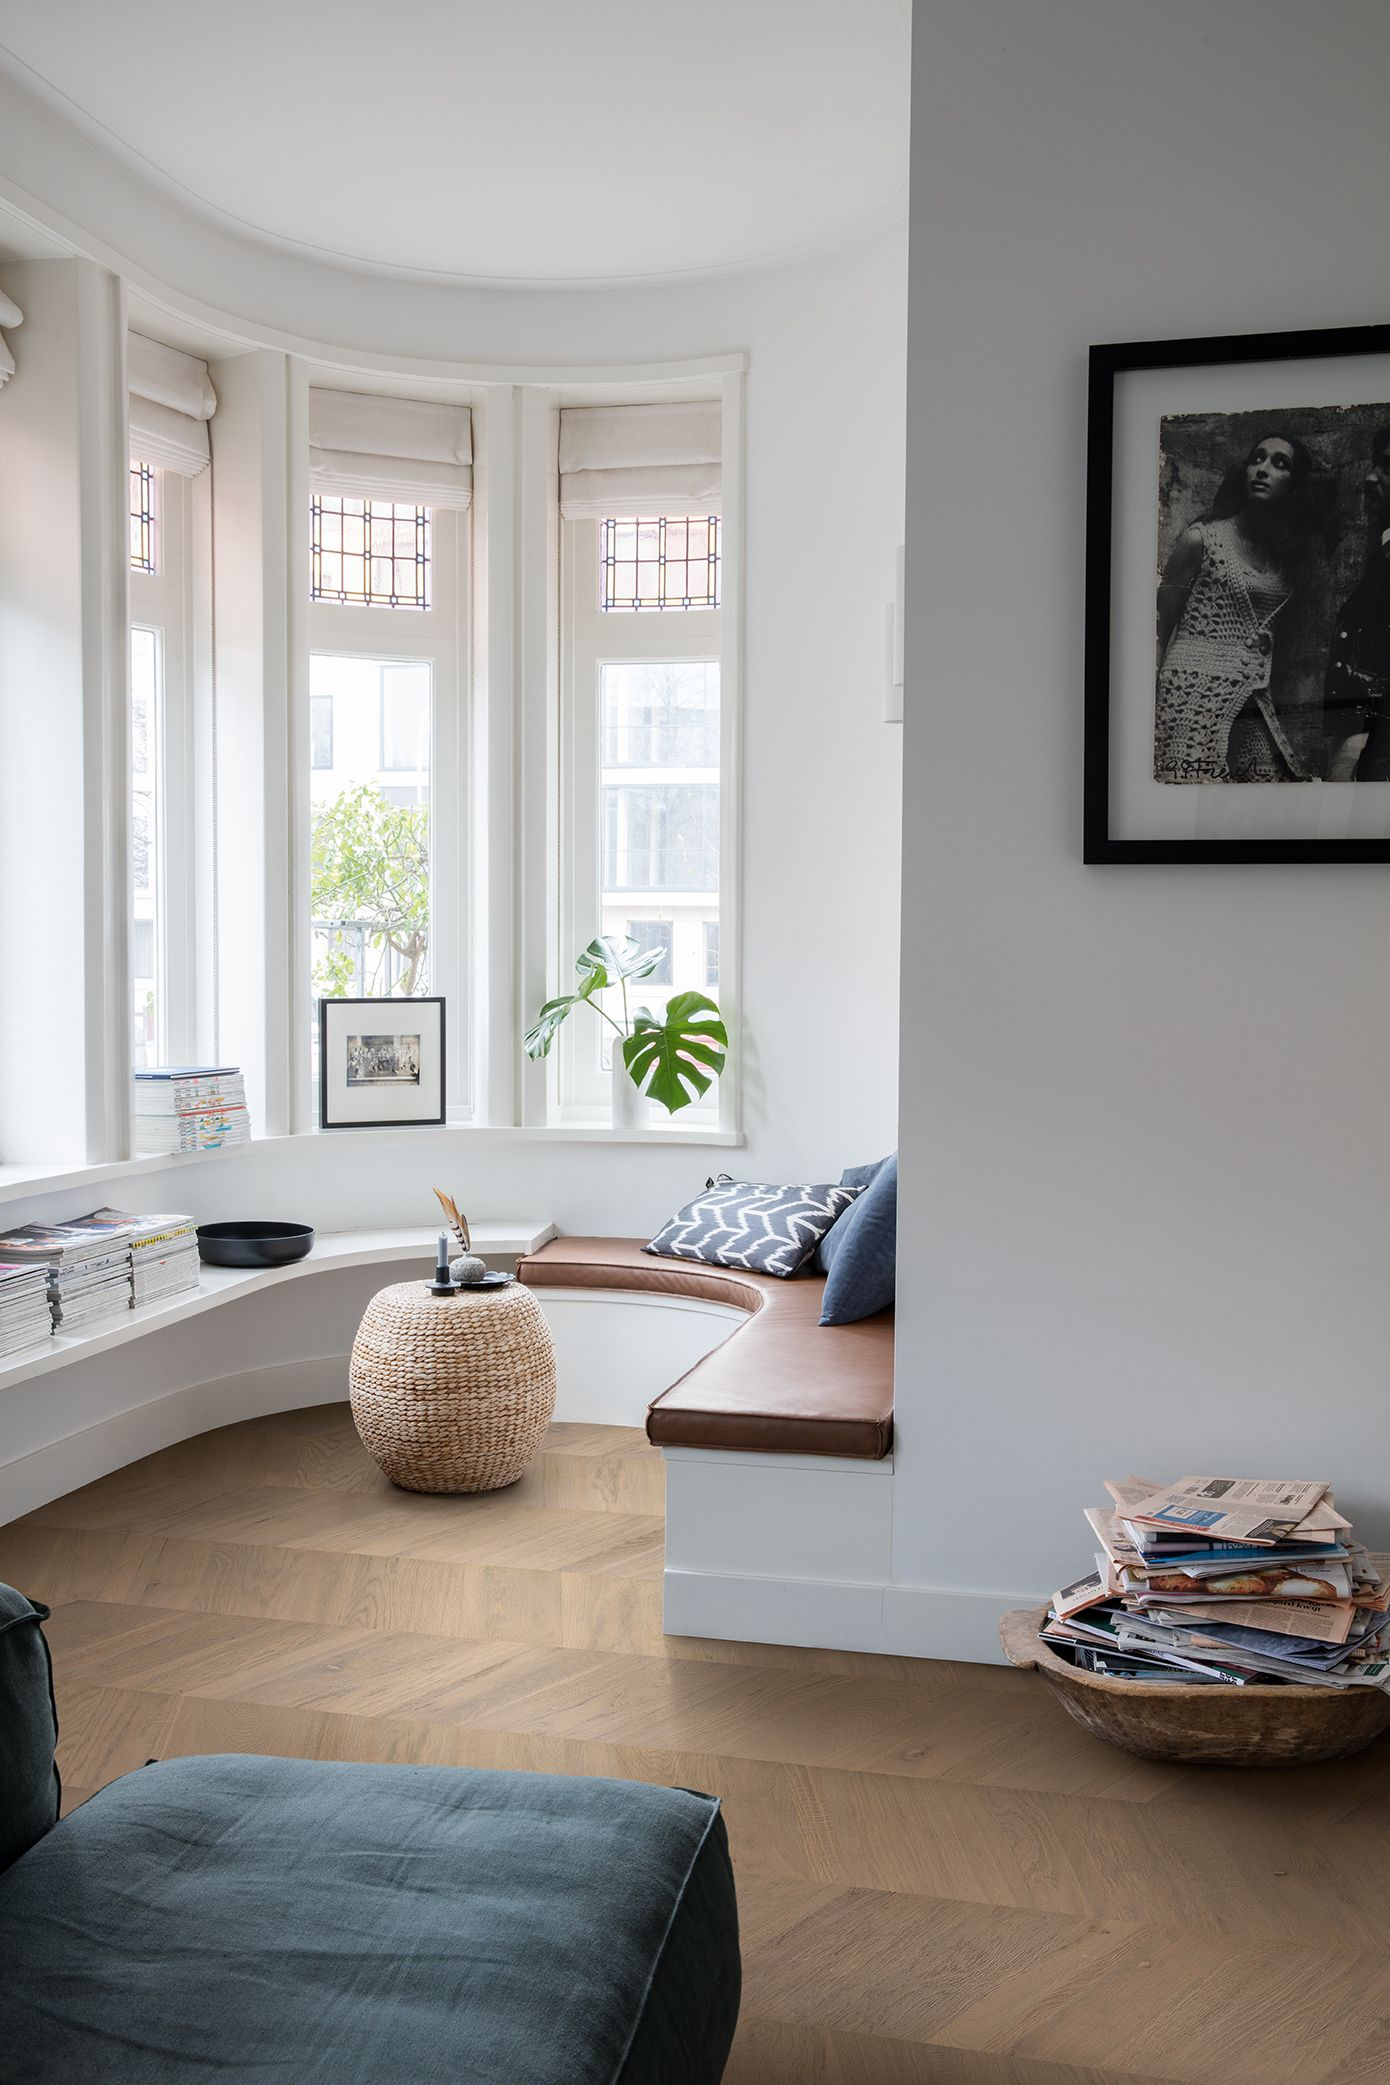 How to choose the ideal living room floor | Pinterest | Living room ...